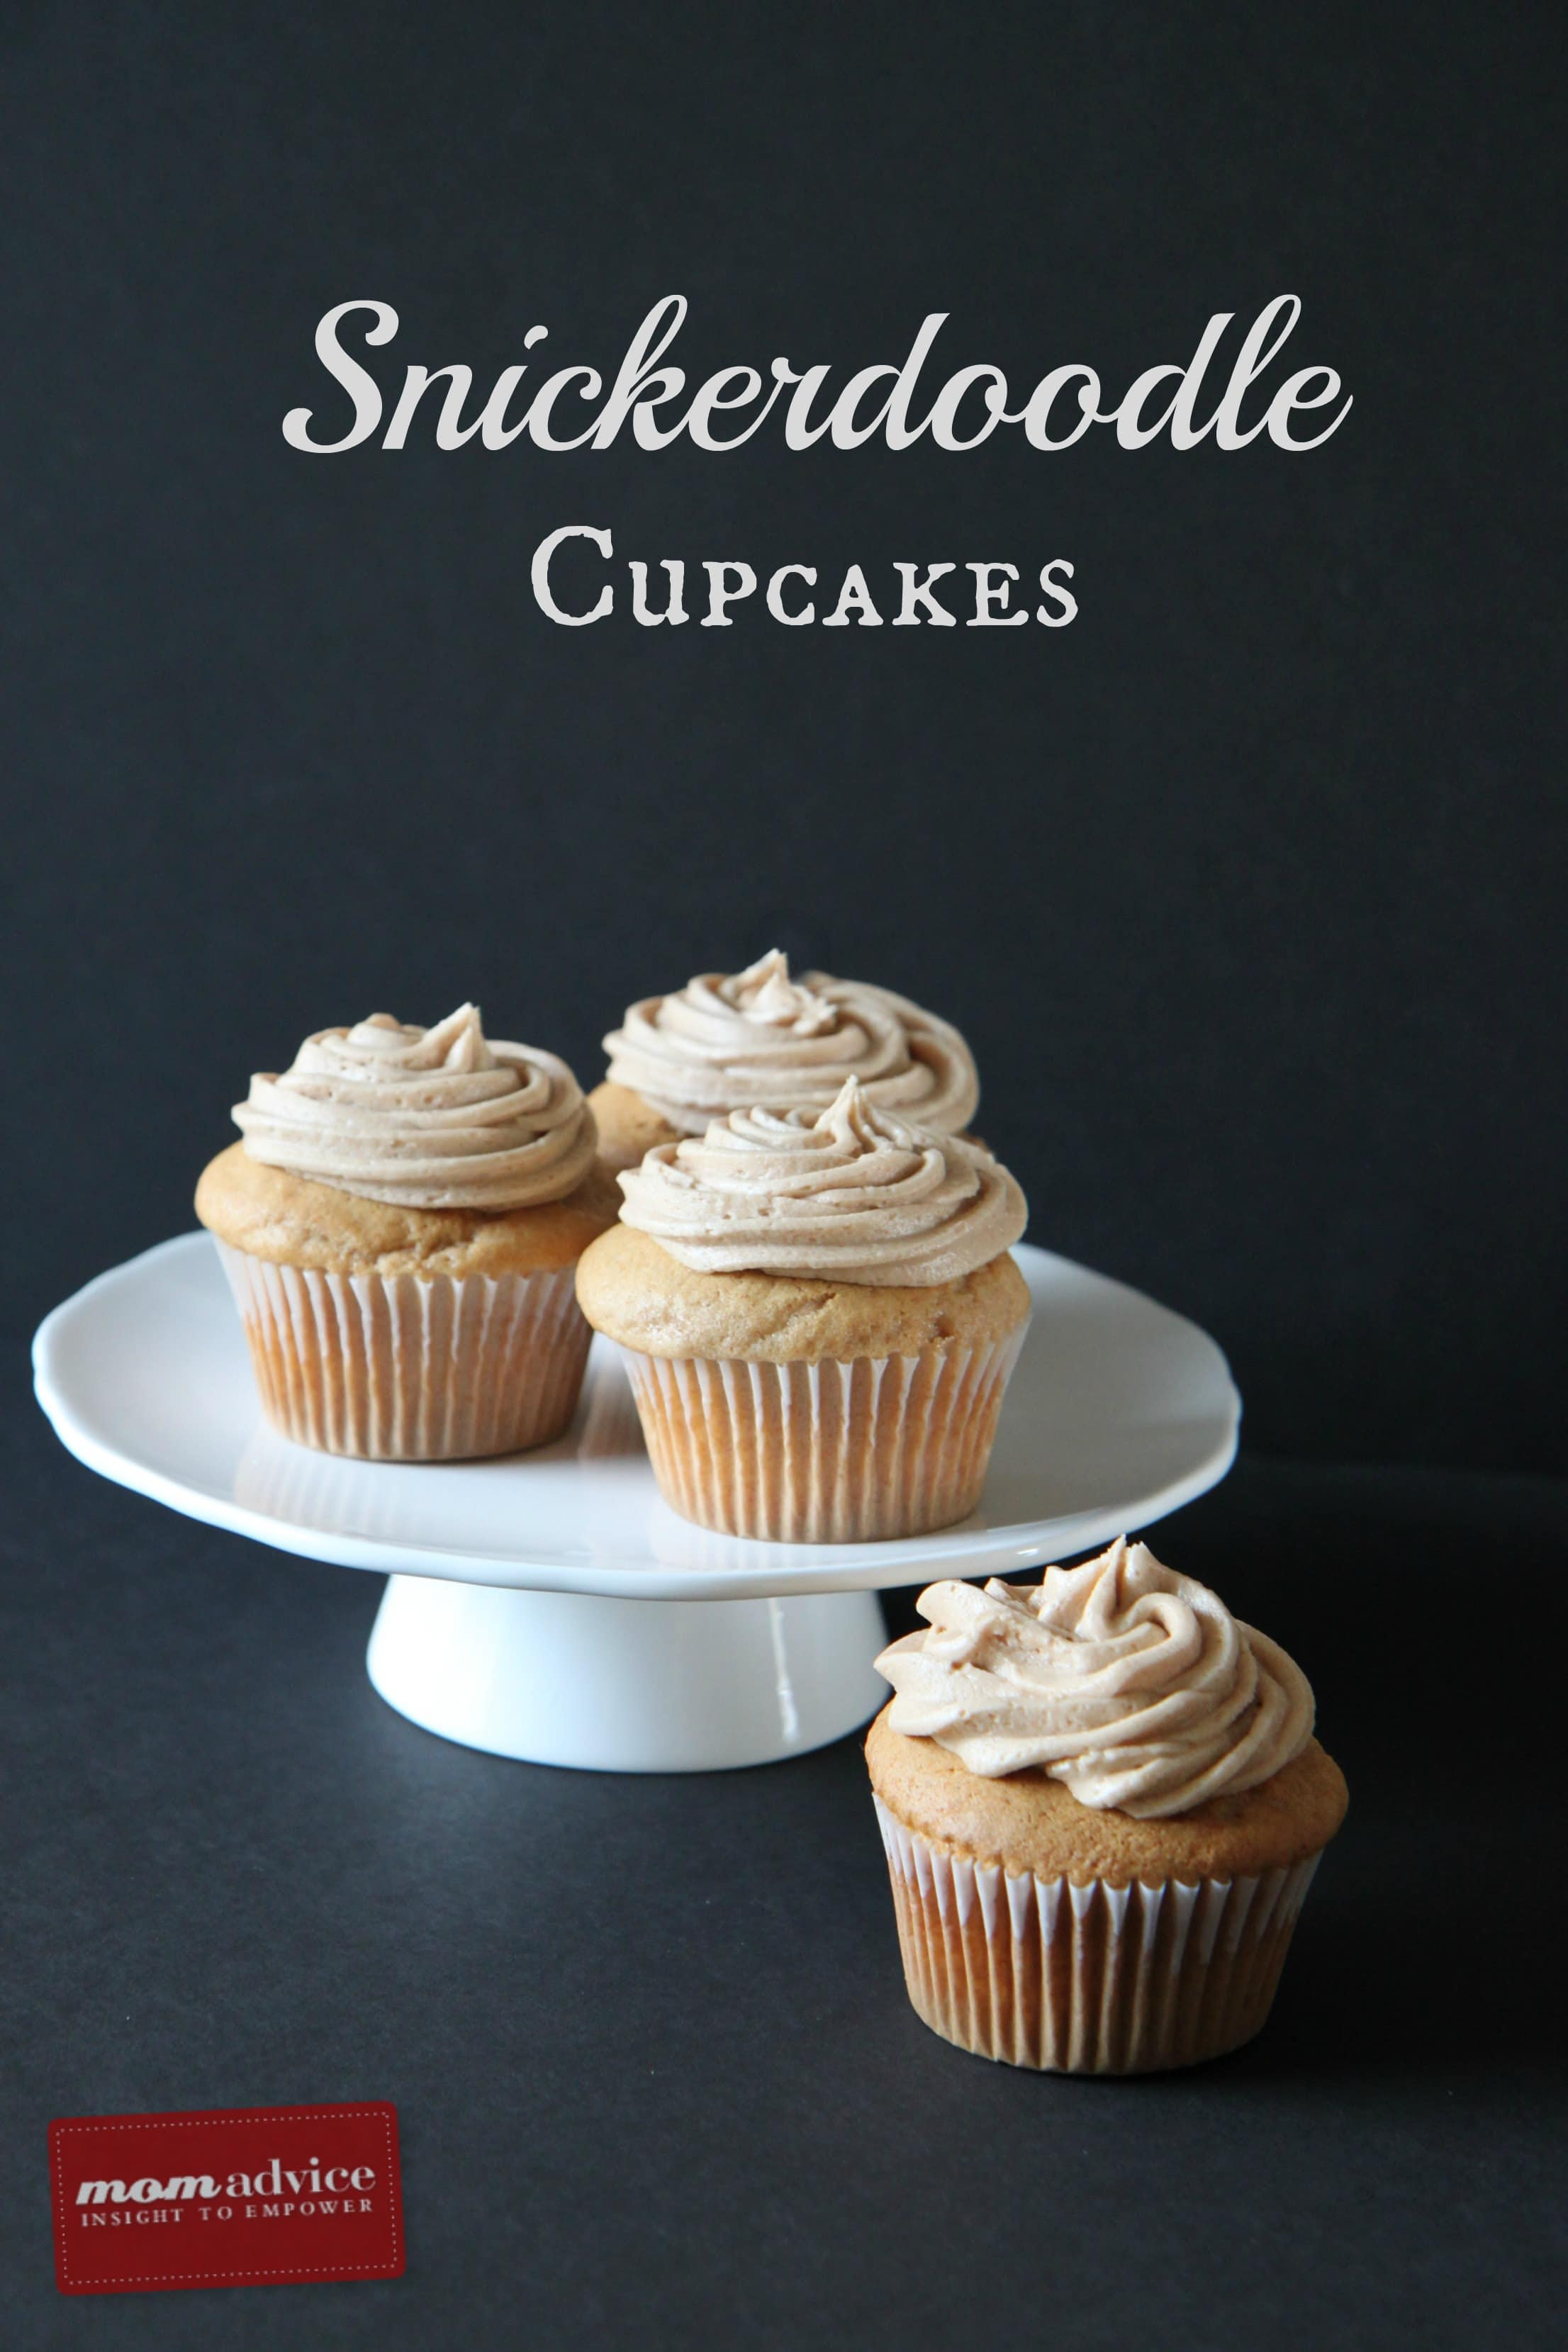 Snickerdoodle Cupcakes - MomAdvice